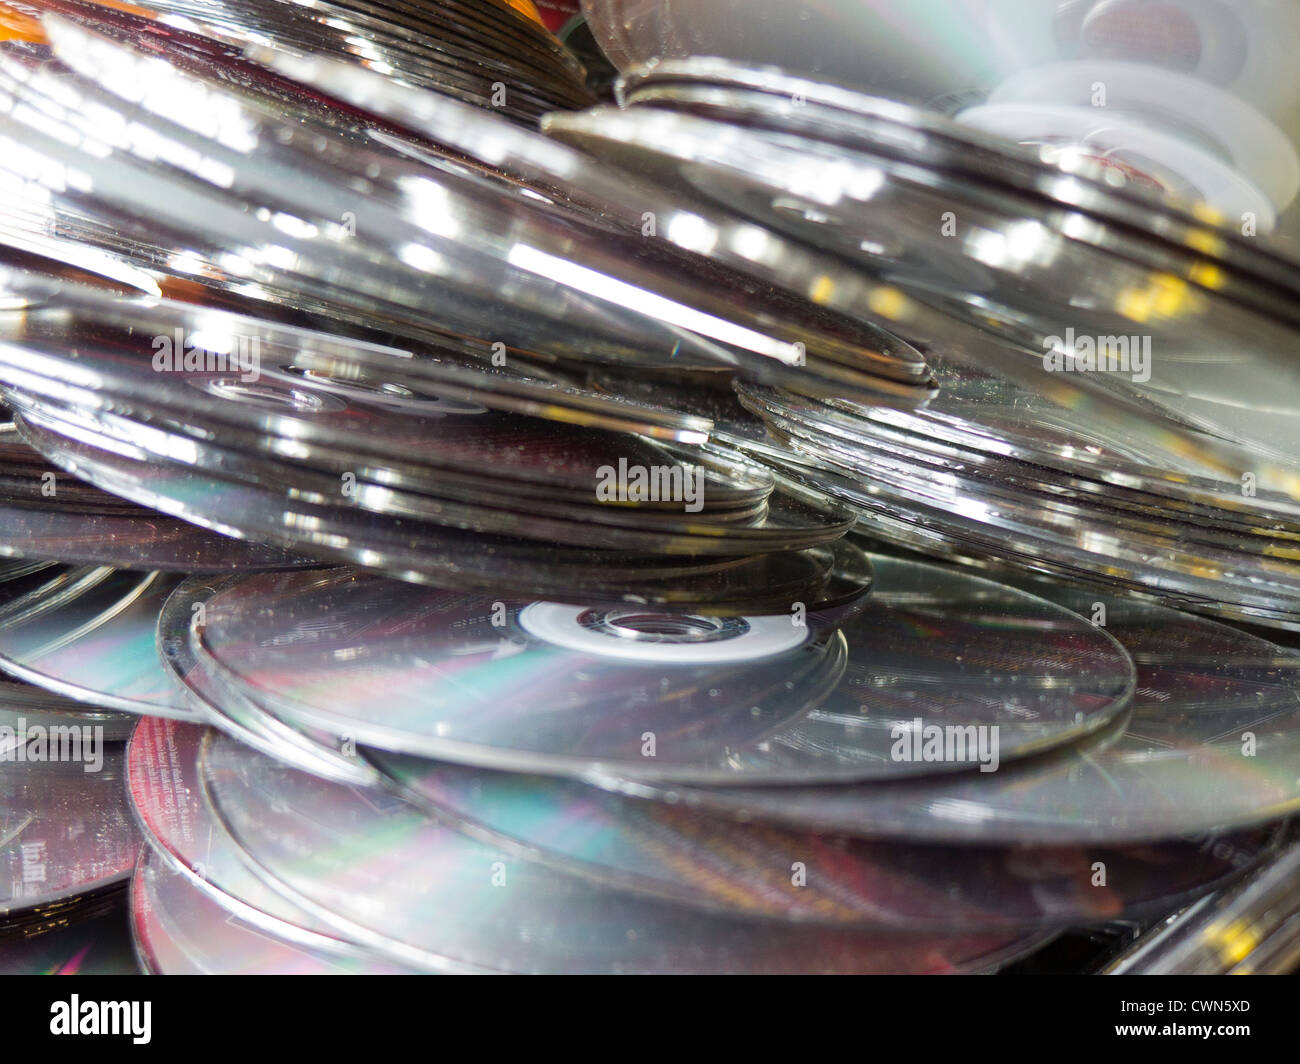 Obsolete 0ld CD DVD optical media discs. - Stock Image